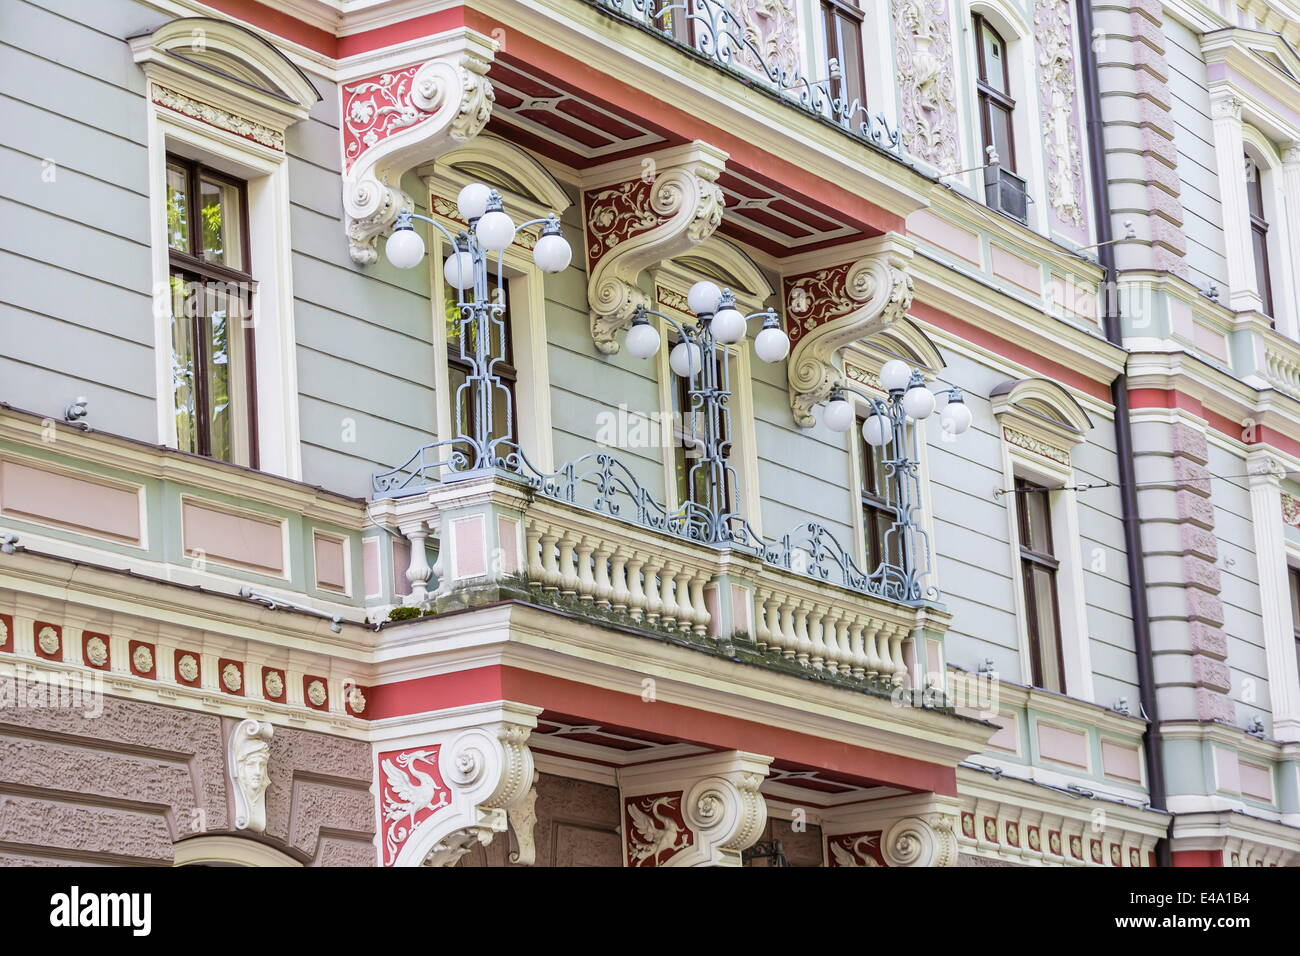 Art Nouveau style architecture locally known as Jugendstil, Riga, Latvia, Europe - Stock Image